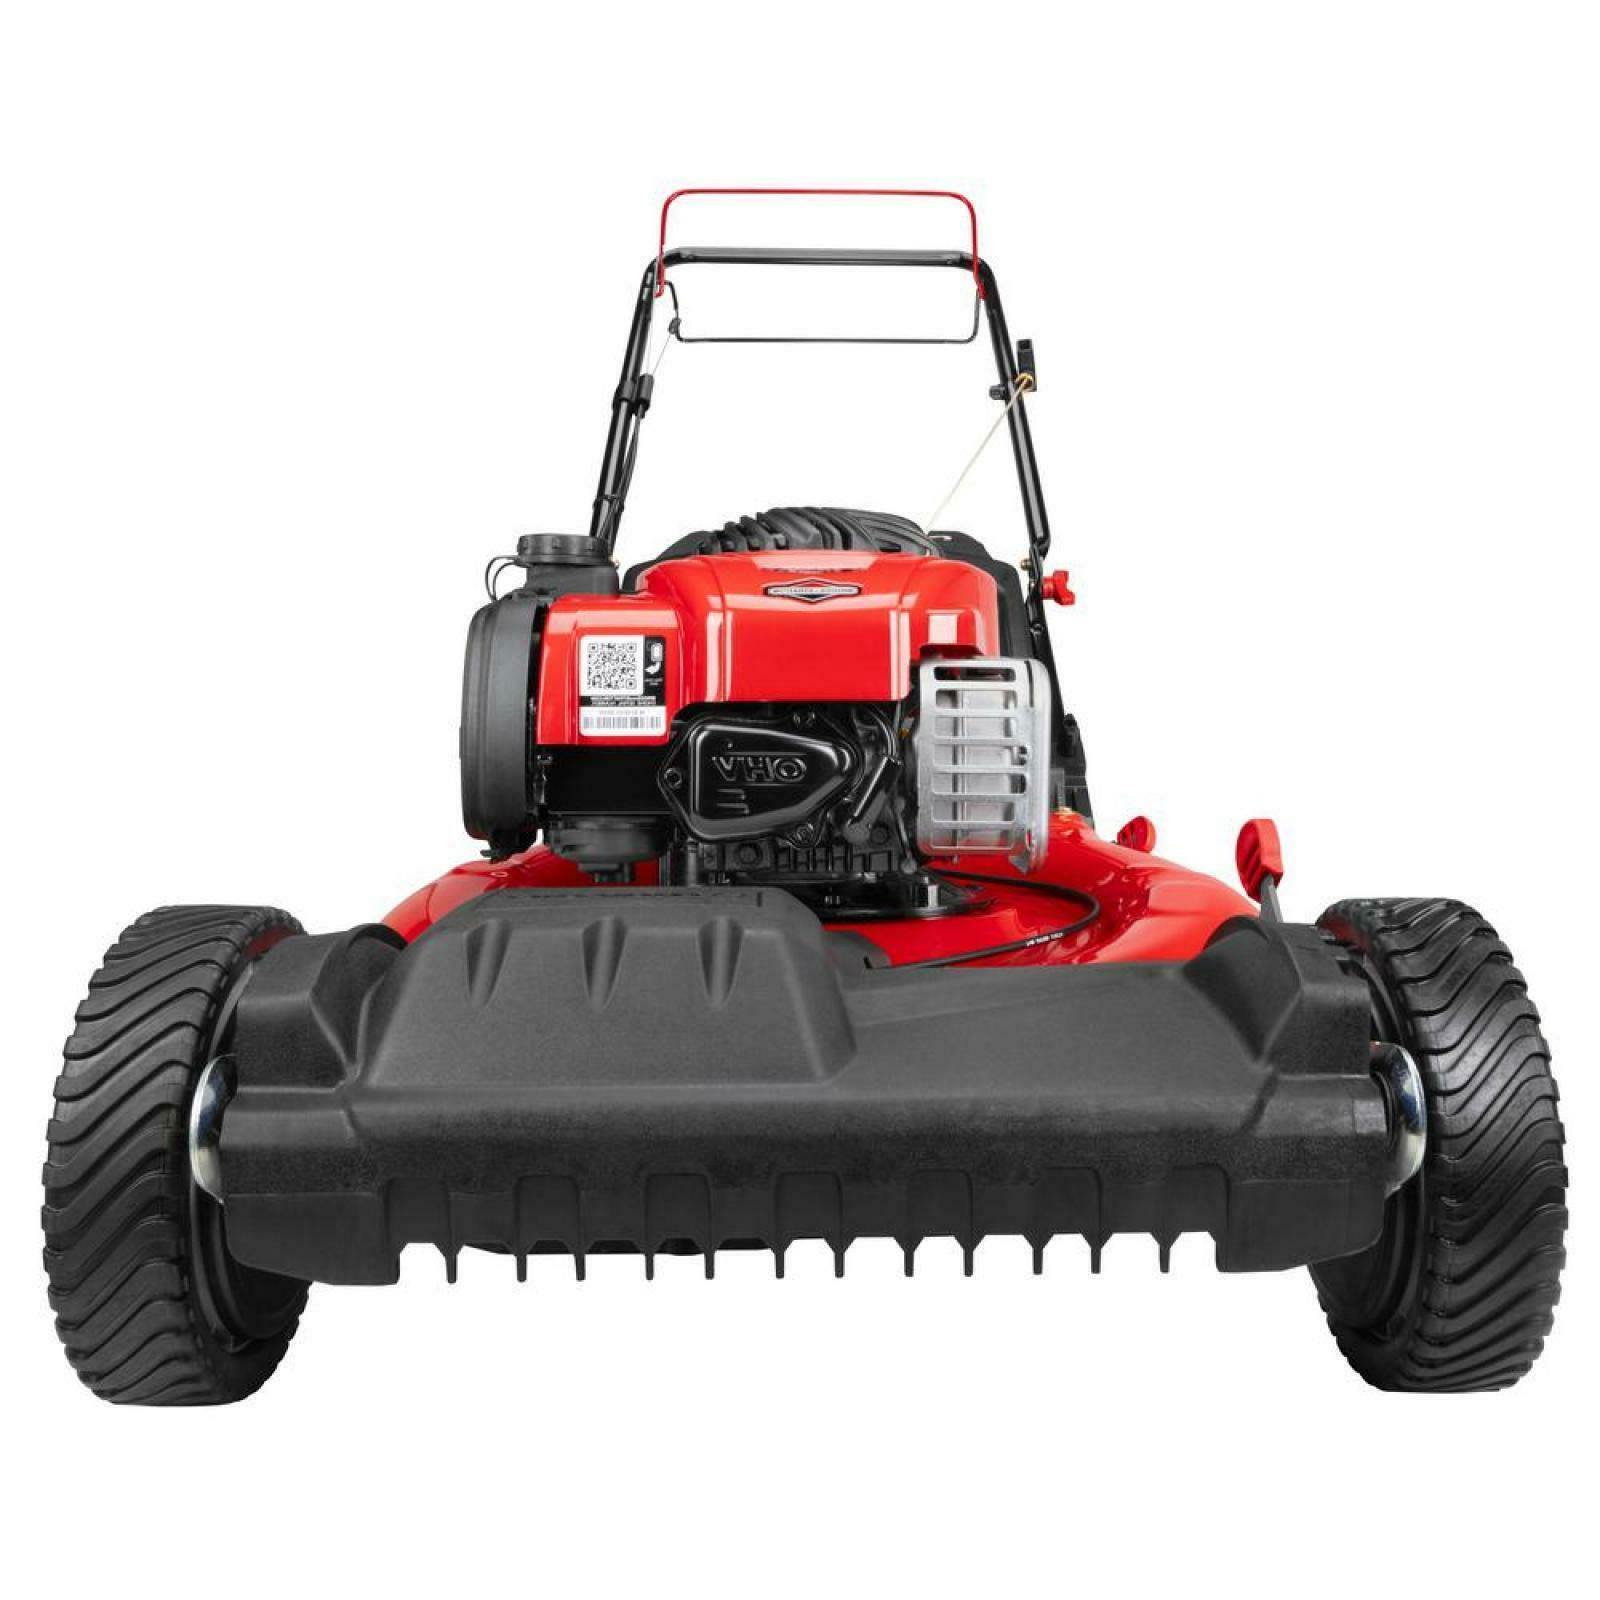 Troy Self Lawn 140cc Gas Powered Action